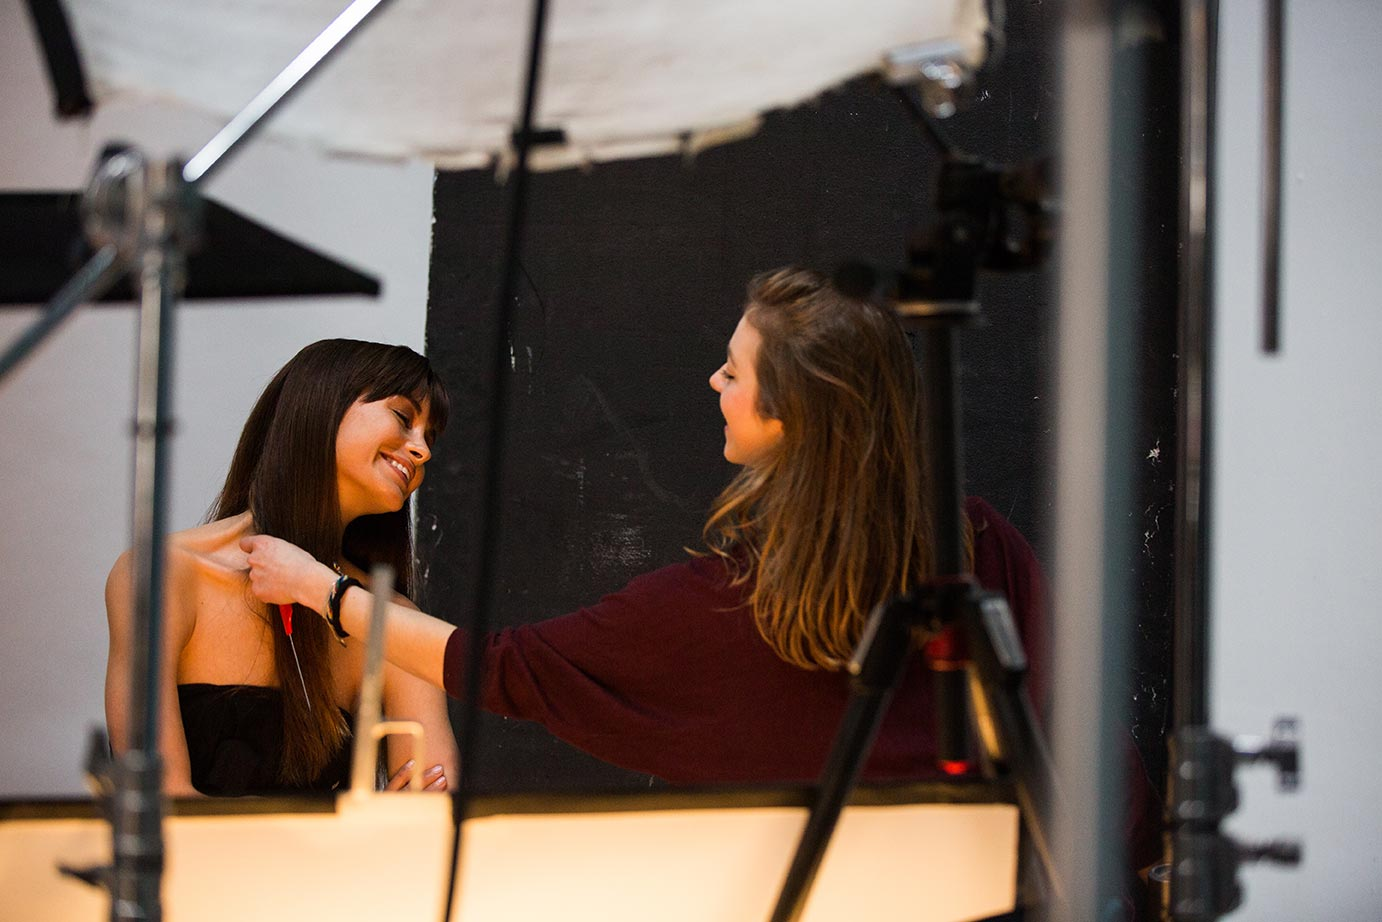 The do's and don'ts of photo shoot etiquette